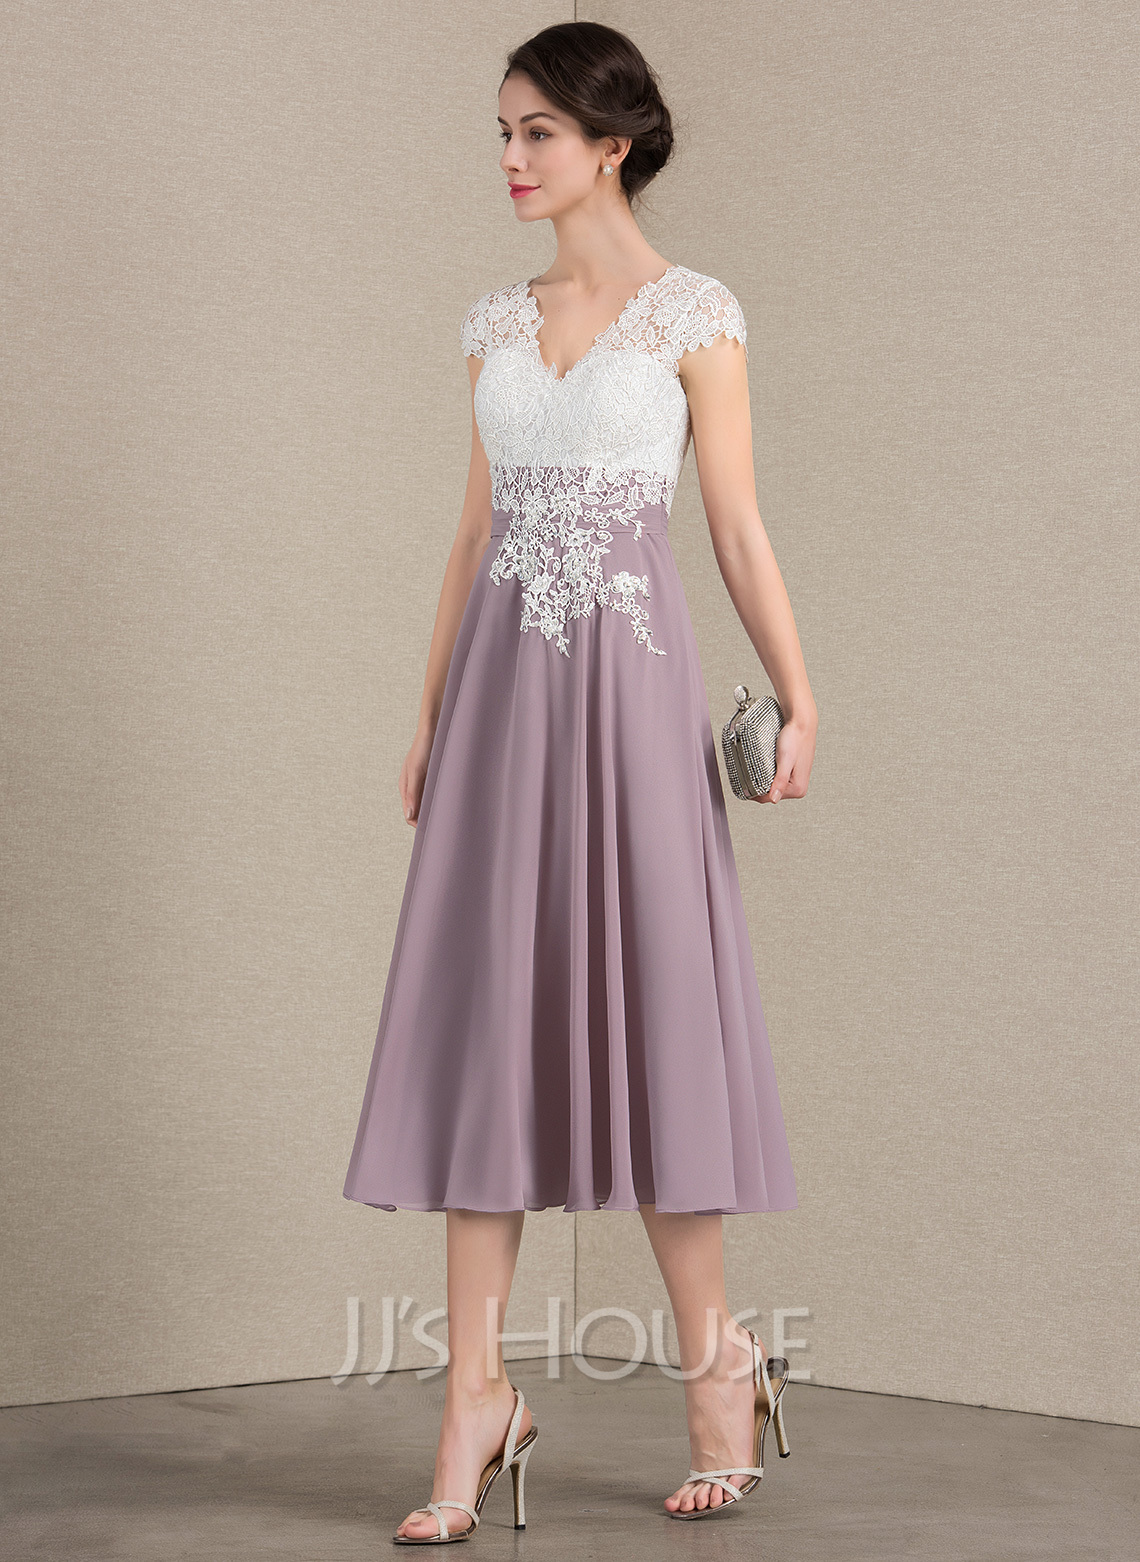 325638bab31 A-Line Princess V-neck Tea-Length Chiffon Lace Mother of the Bride Dress   143390